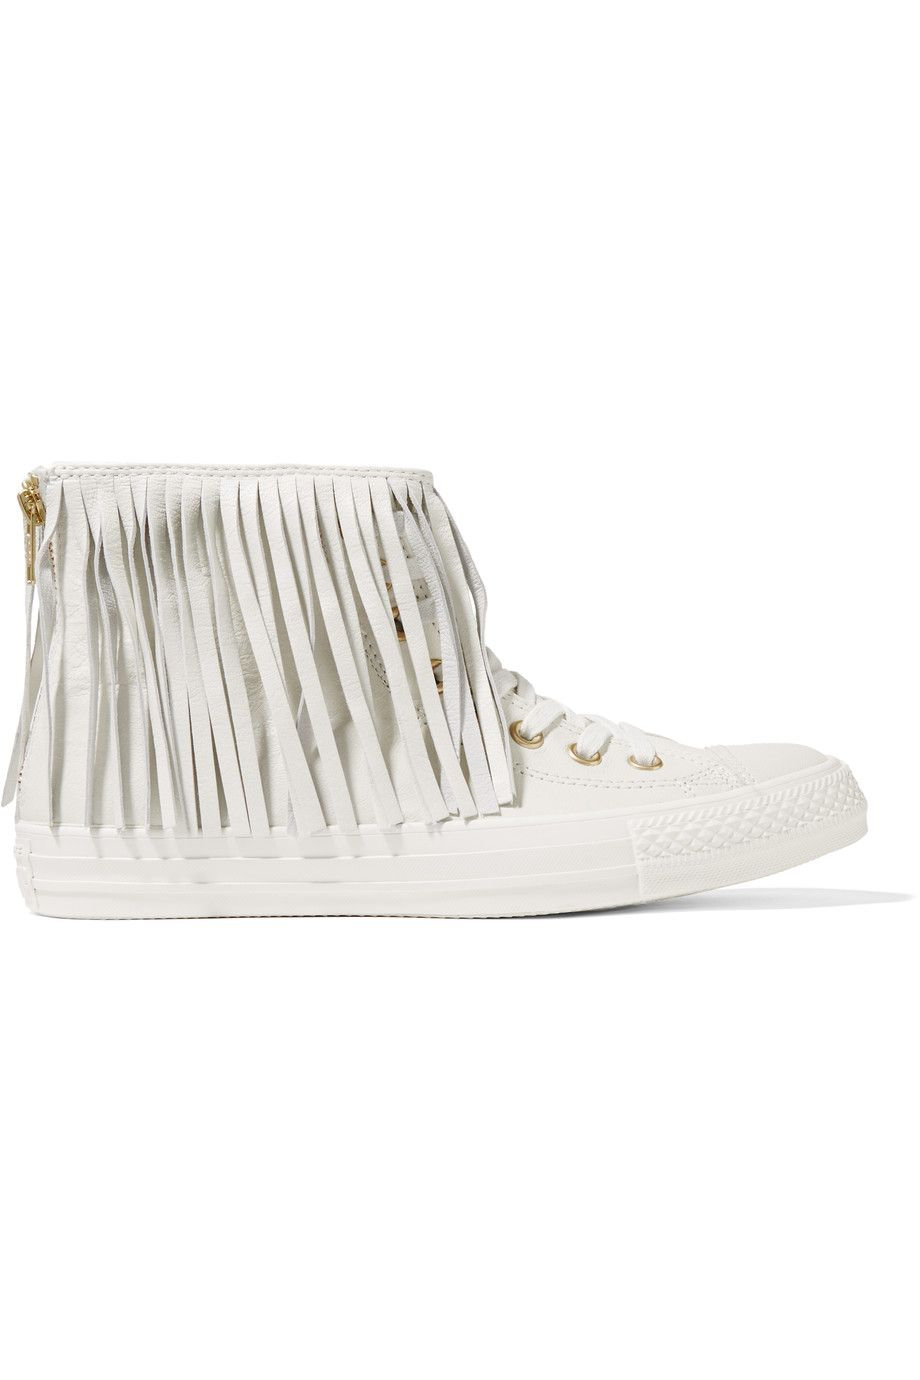 Converse Chuck Taylor All Star fringed leather sneakers.